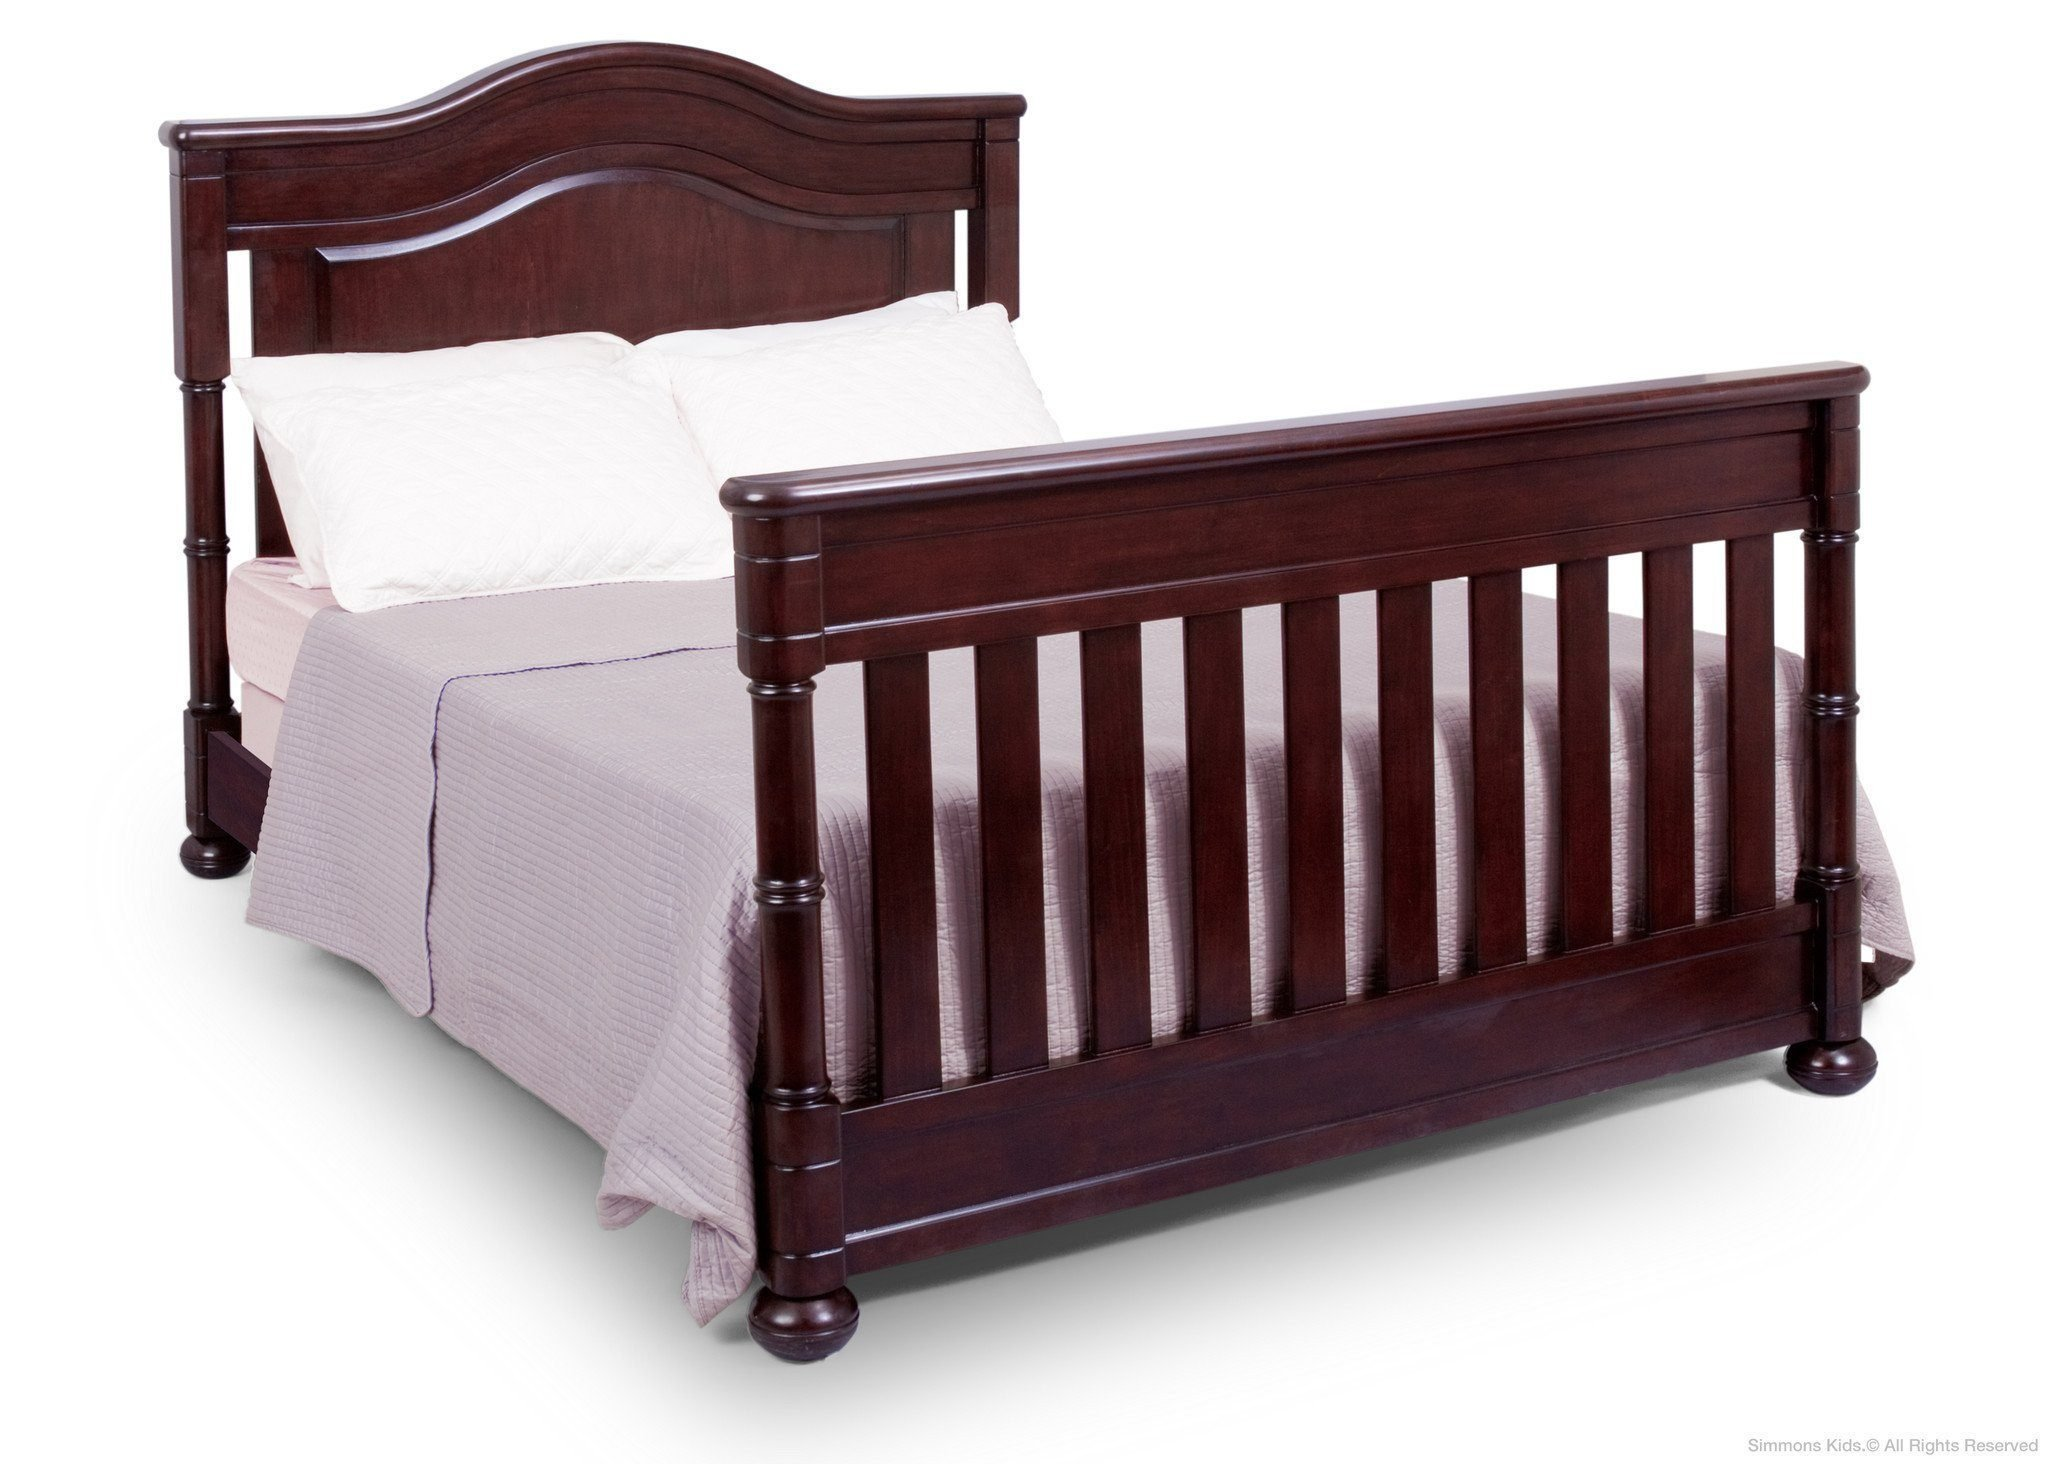 Full Size Conversion Kit Bed Rails for Simmons/Delta Childrens High Point Crib-N-More Crib - Molasses by CC KITS (Image #2)